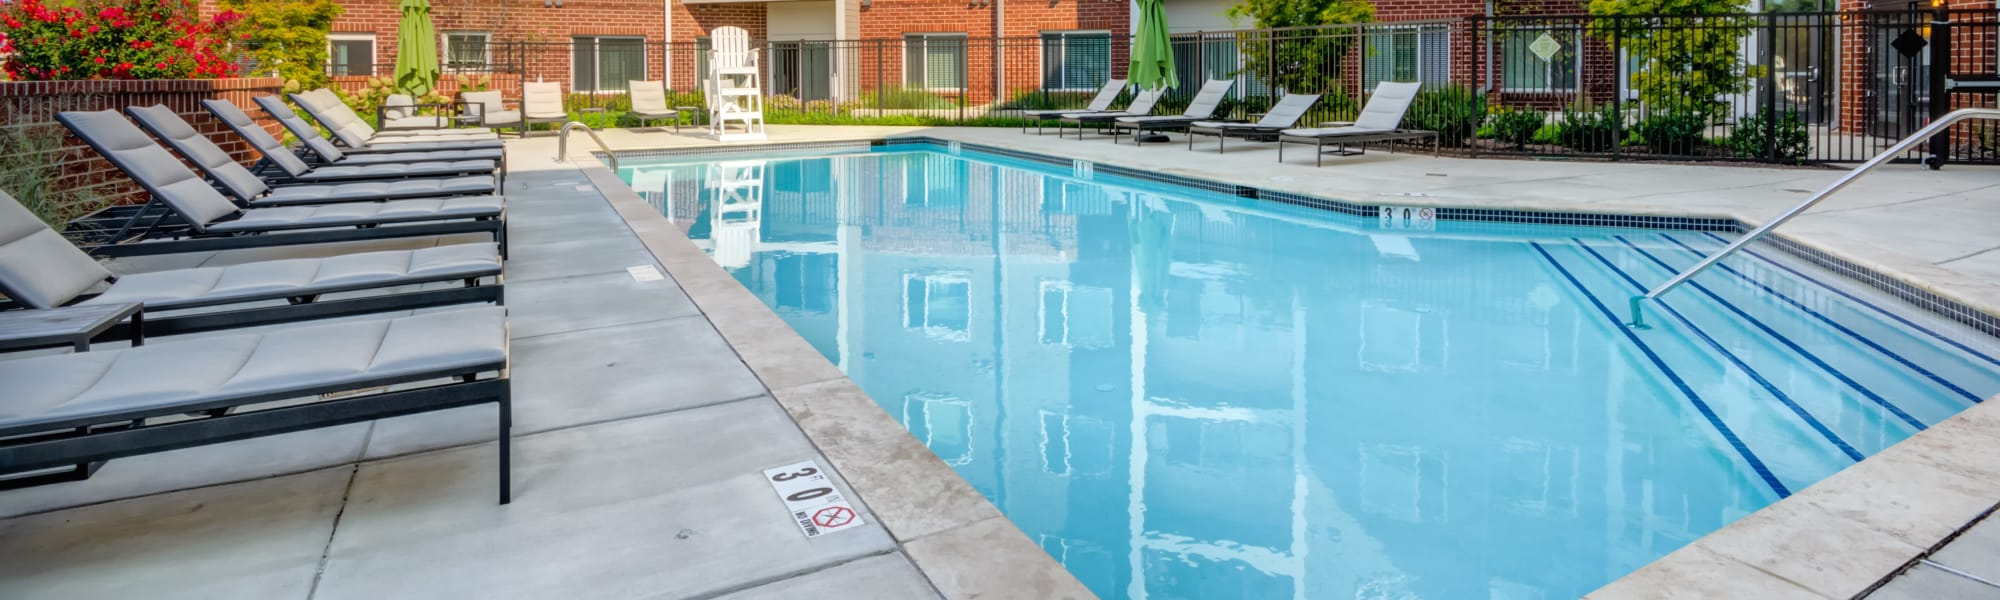 Contact Crossings at Olde Towne for information about our apartments in Gaithersburg